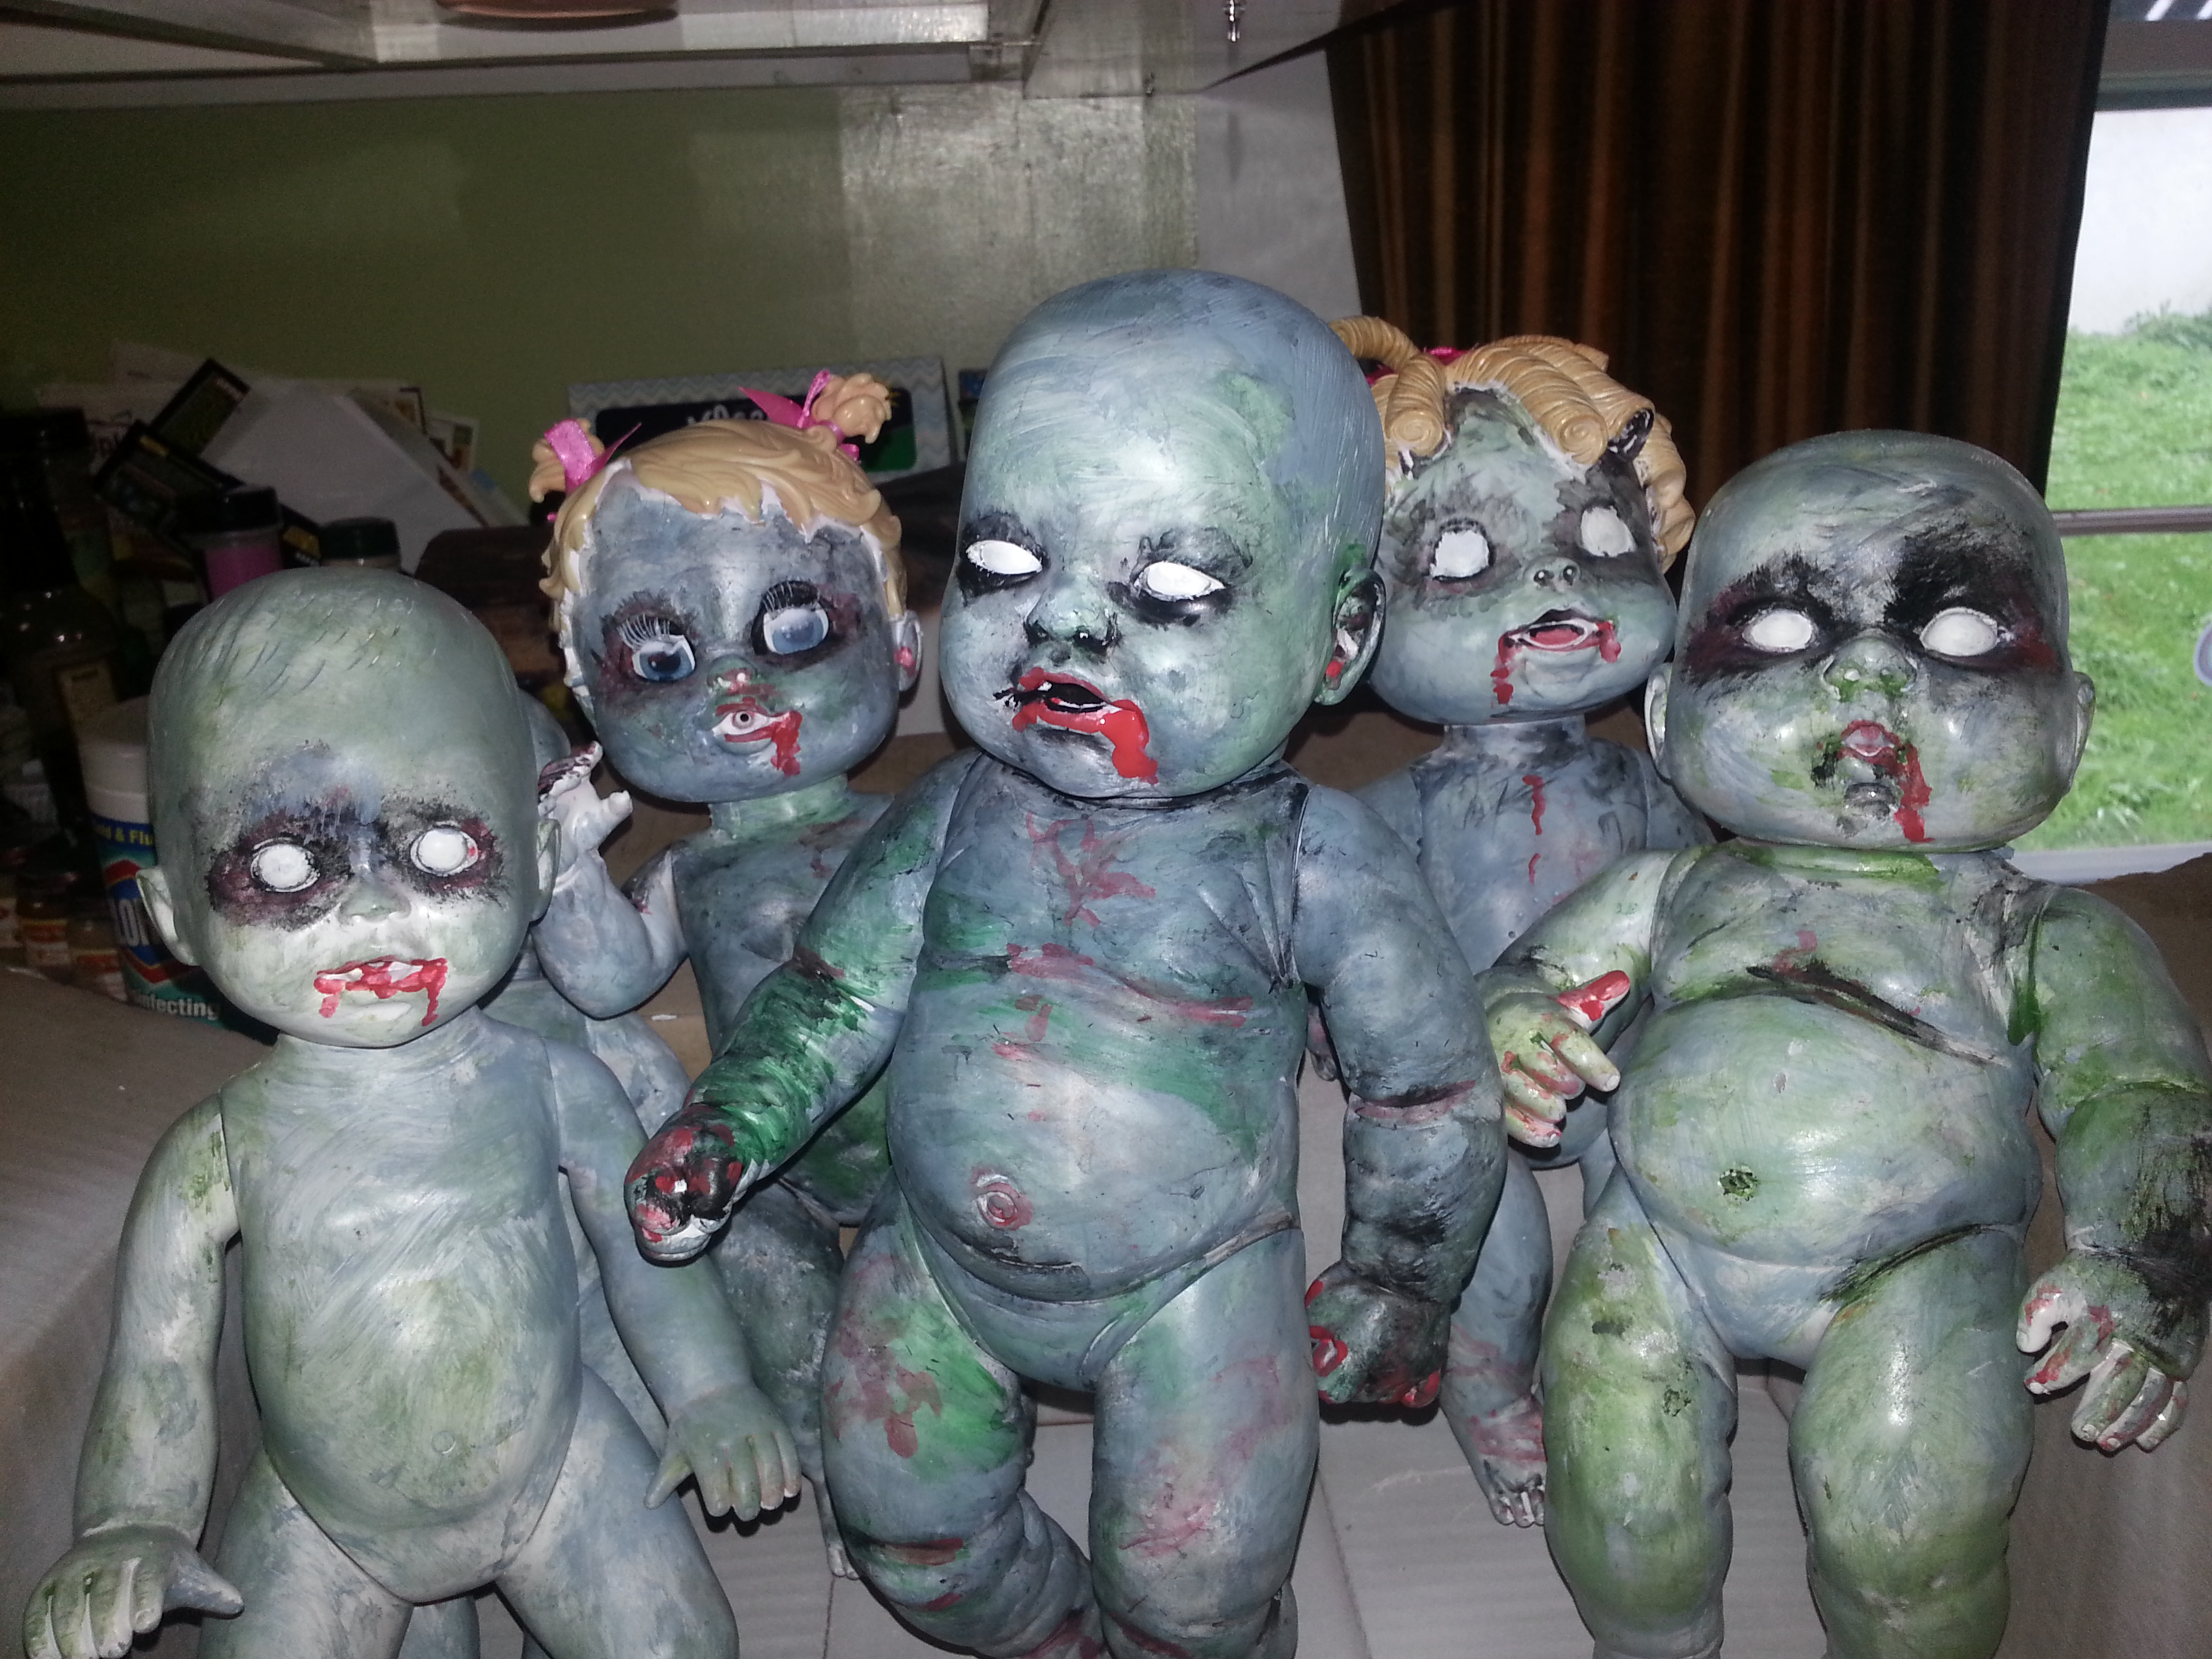 Zombie frugal frights and delights baby dolls transformed into the walking dead image copyrighted all rights reserved solutioingenieria Gallery